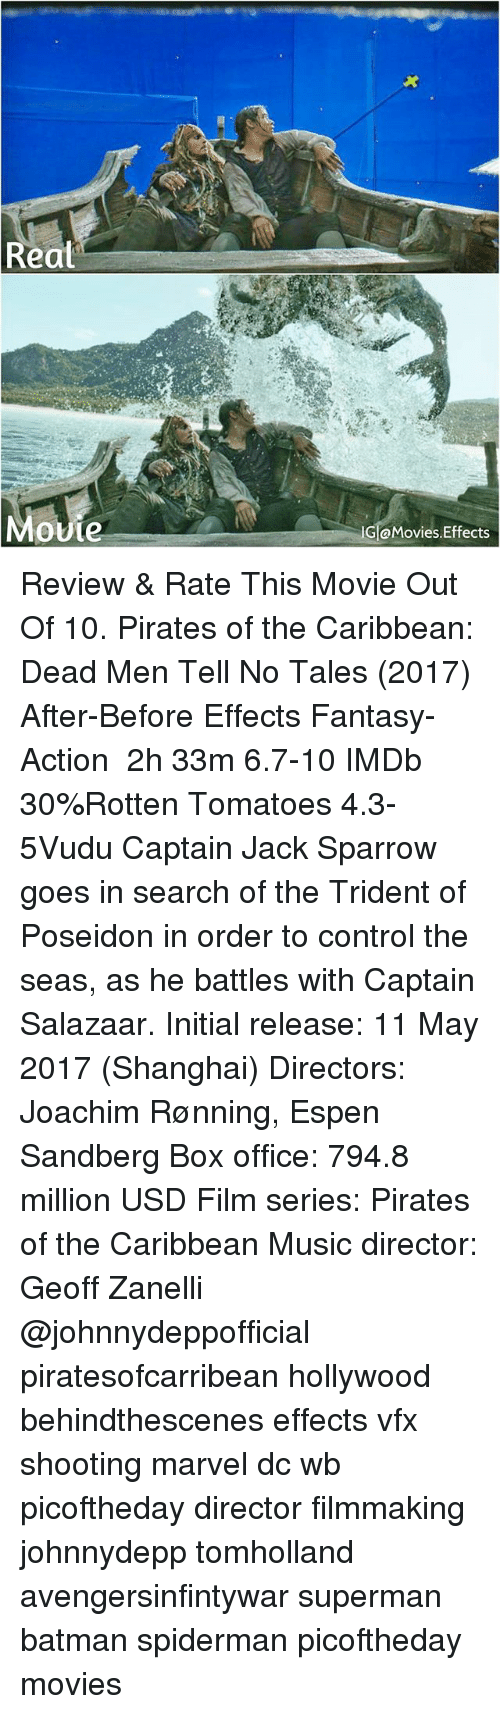 Batman, Memes, and Movies: Reat  G aMovies.Effects  ovie Review & Rate This Movie Out Of 10. Pirates of the Caribbean: Dead Men Tell No Tales (2017)‧After-Before Effects Fantasy-Action ‧ 2h 33m 6.7-10 IMDb 30%Rotten Tomatoes 4.3-5Vudu Captain Jack Sparrow goes in search of the Trident of Poseidon in order to control the seas, as he battles with Captain Salazaar. Initial release: 11 May 2017 (Shanghai) Directors: Joachim Rønning, Espen Sandberg Box office: 794.8 million USD Film series: Pirates of the Caribbean Music director: Geoff Zanelli @johnnydeppofficial piratesofcarribean hollywood behindthescenes effects vfx shooting marvel dc wb picoftheday director filmmaking johnnydepp tomholland avengersinfintywar superman batman spiderman picoftheday movies